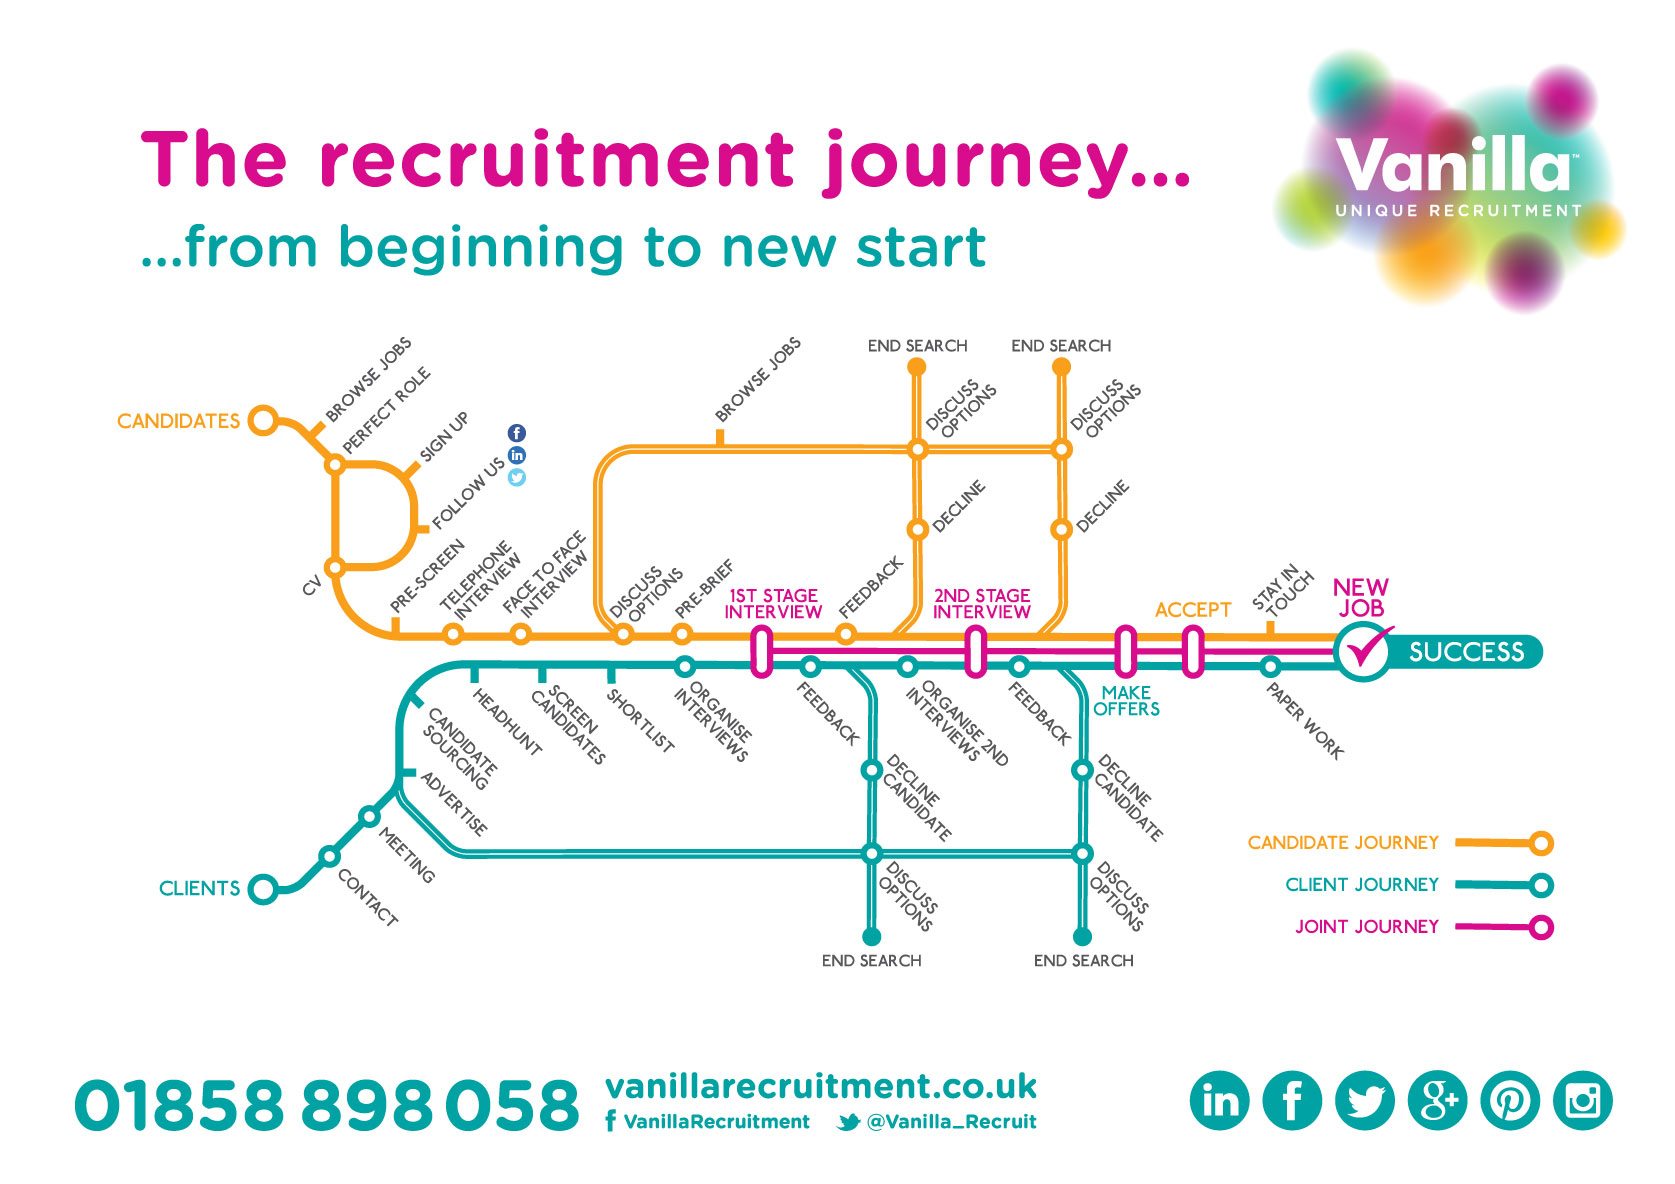 Client Journey - The Recruitment Journey from Beginning to New Start on